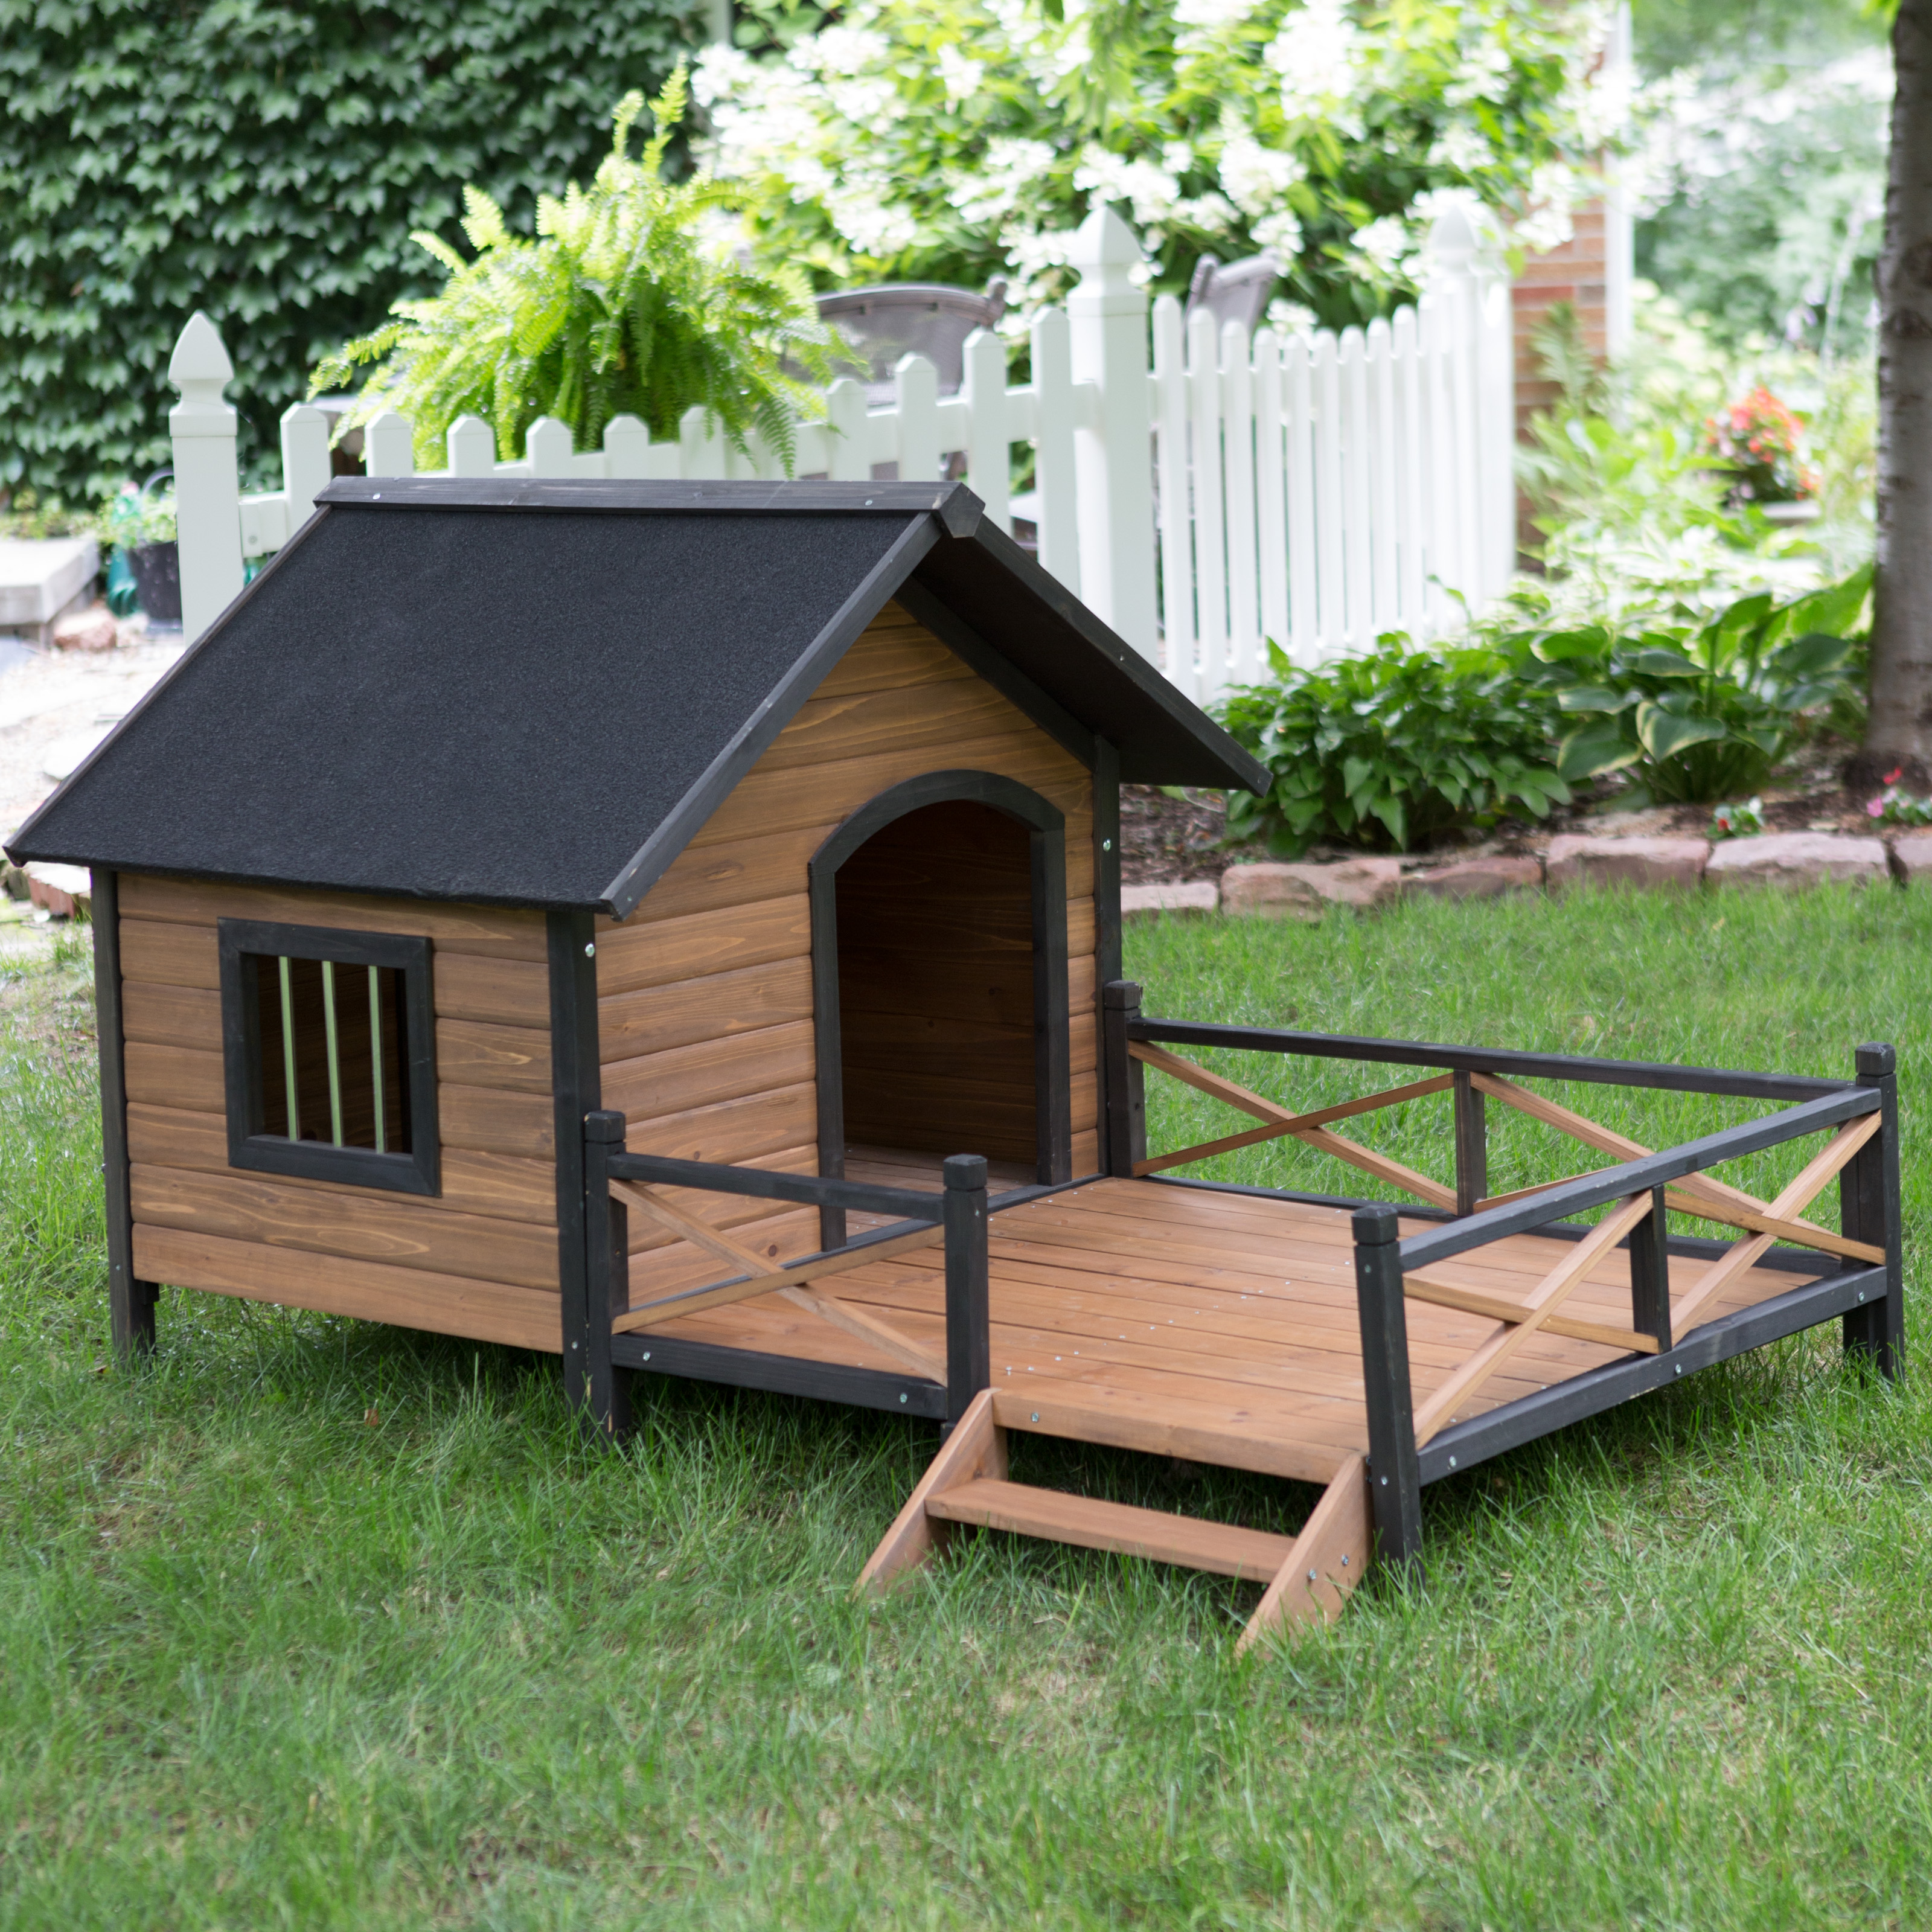 boomer george lodge dog house with porch large hayneedle